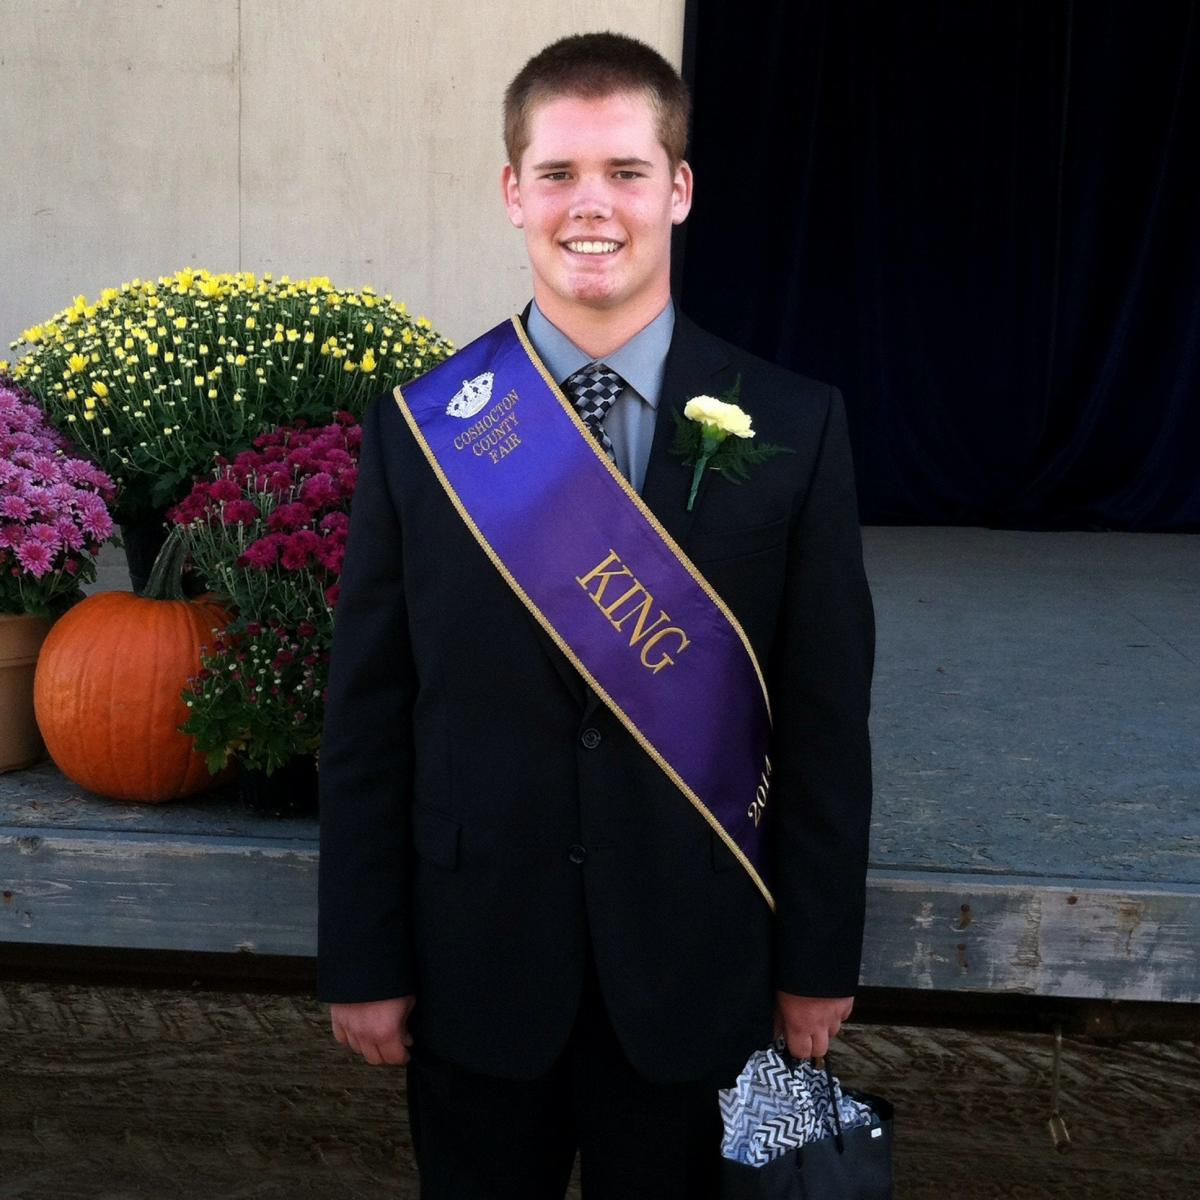 Joe was the 2014 Coshocton County Fair King.